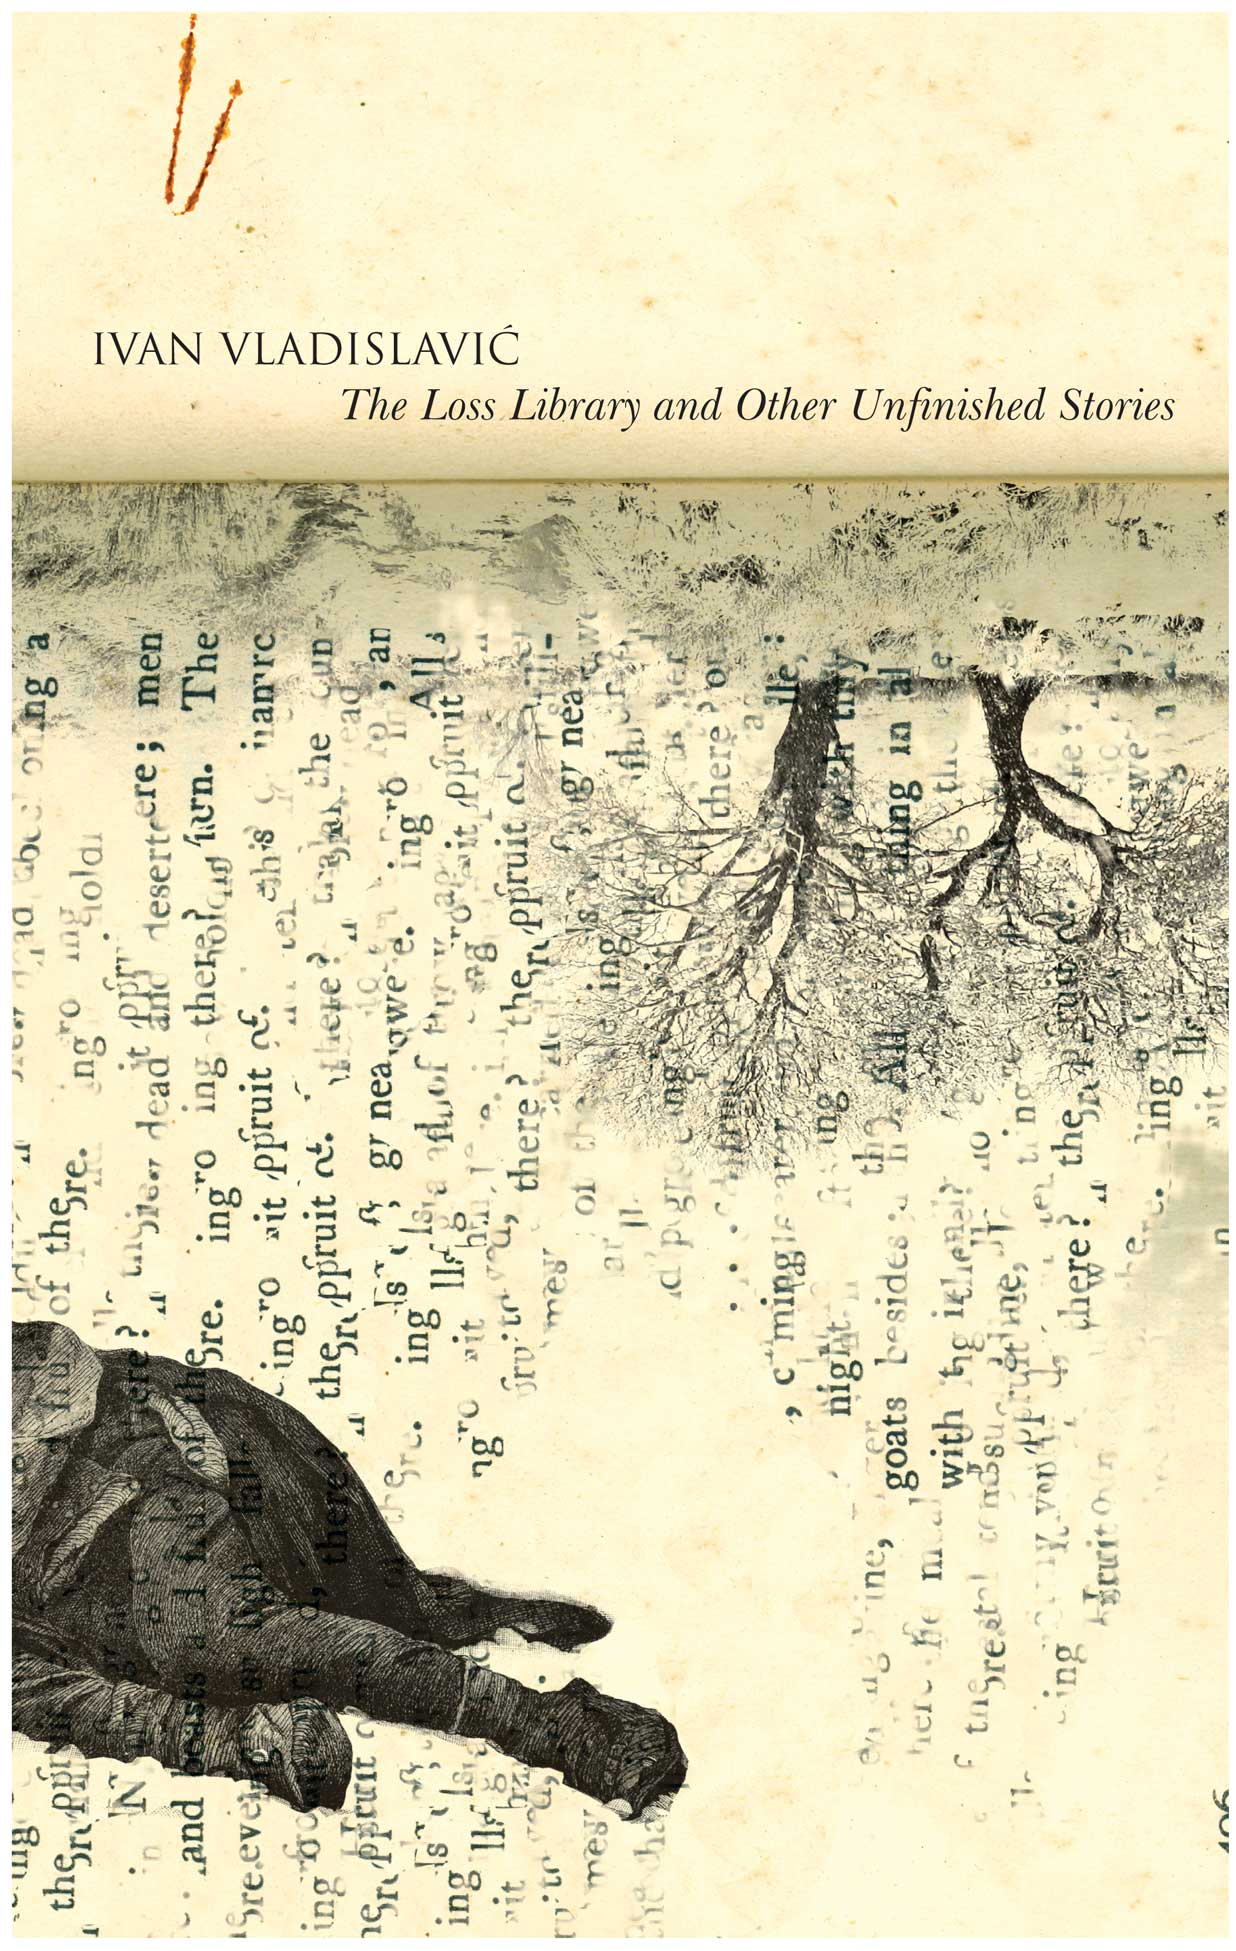 The Loss Library and Other Unfinished Stories by Ivan Vladislavić | Seagull Books